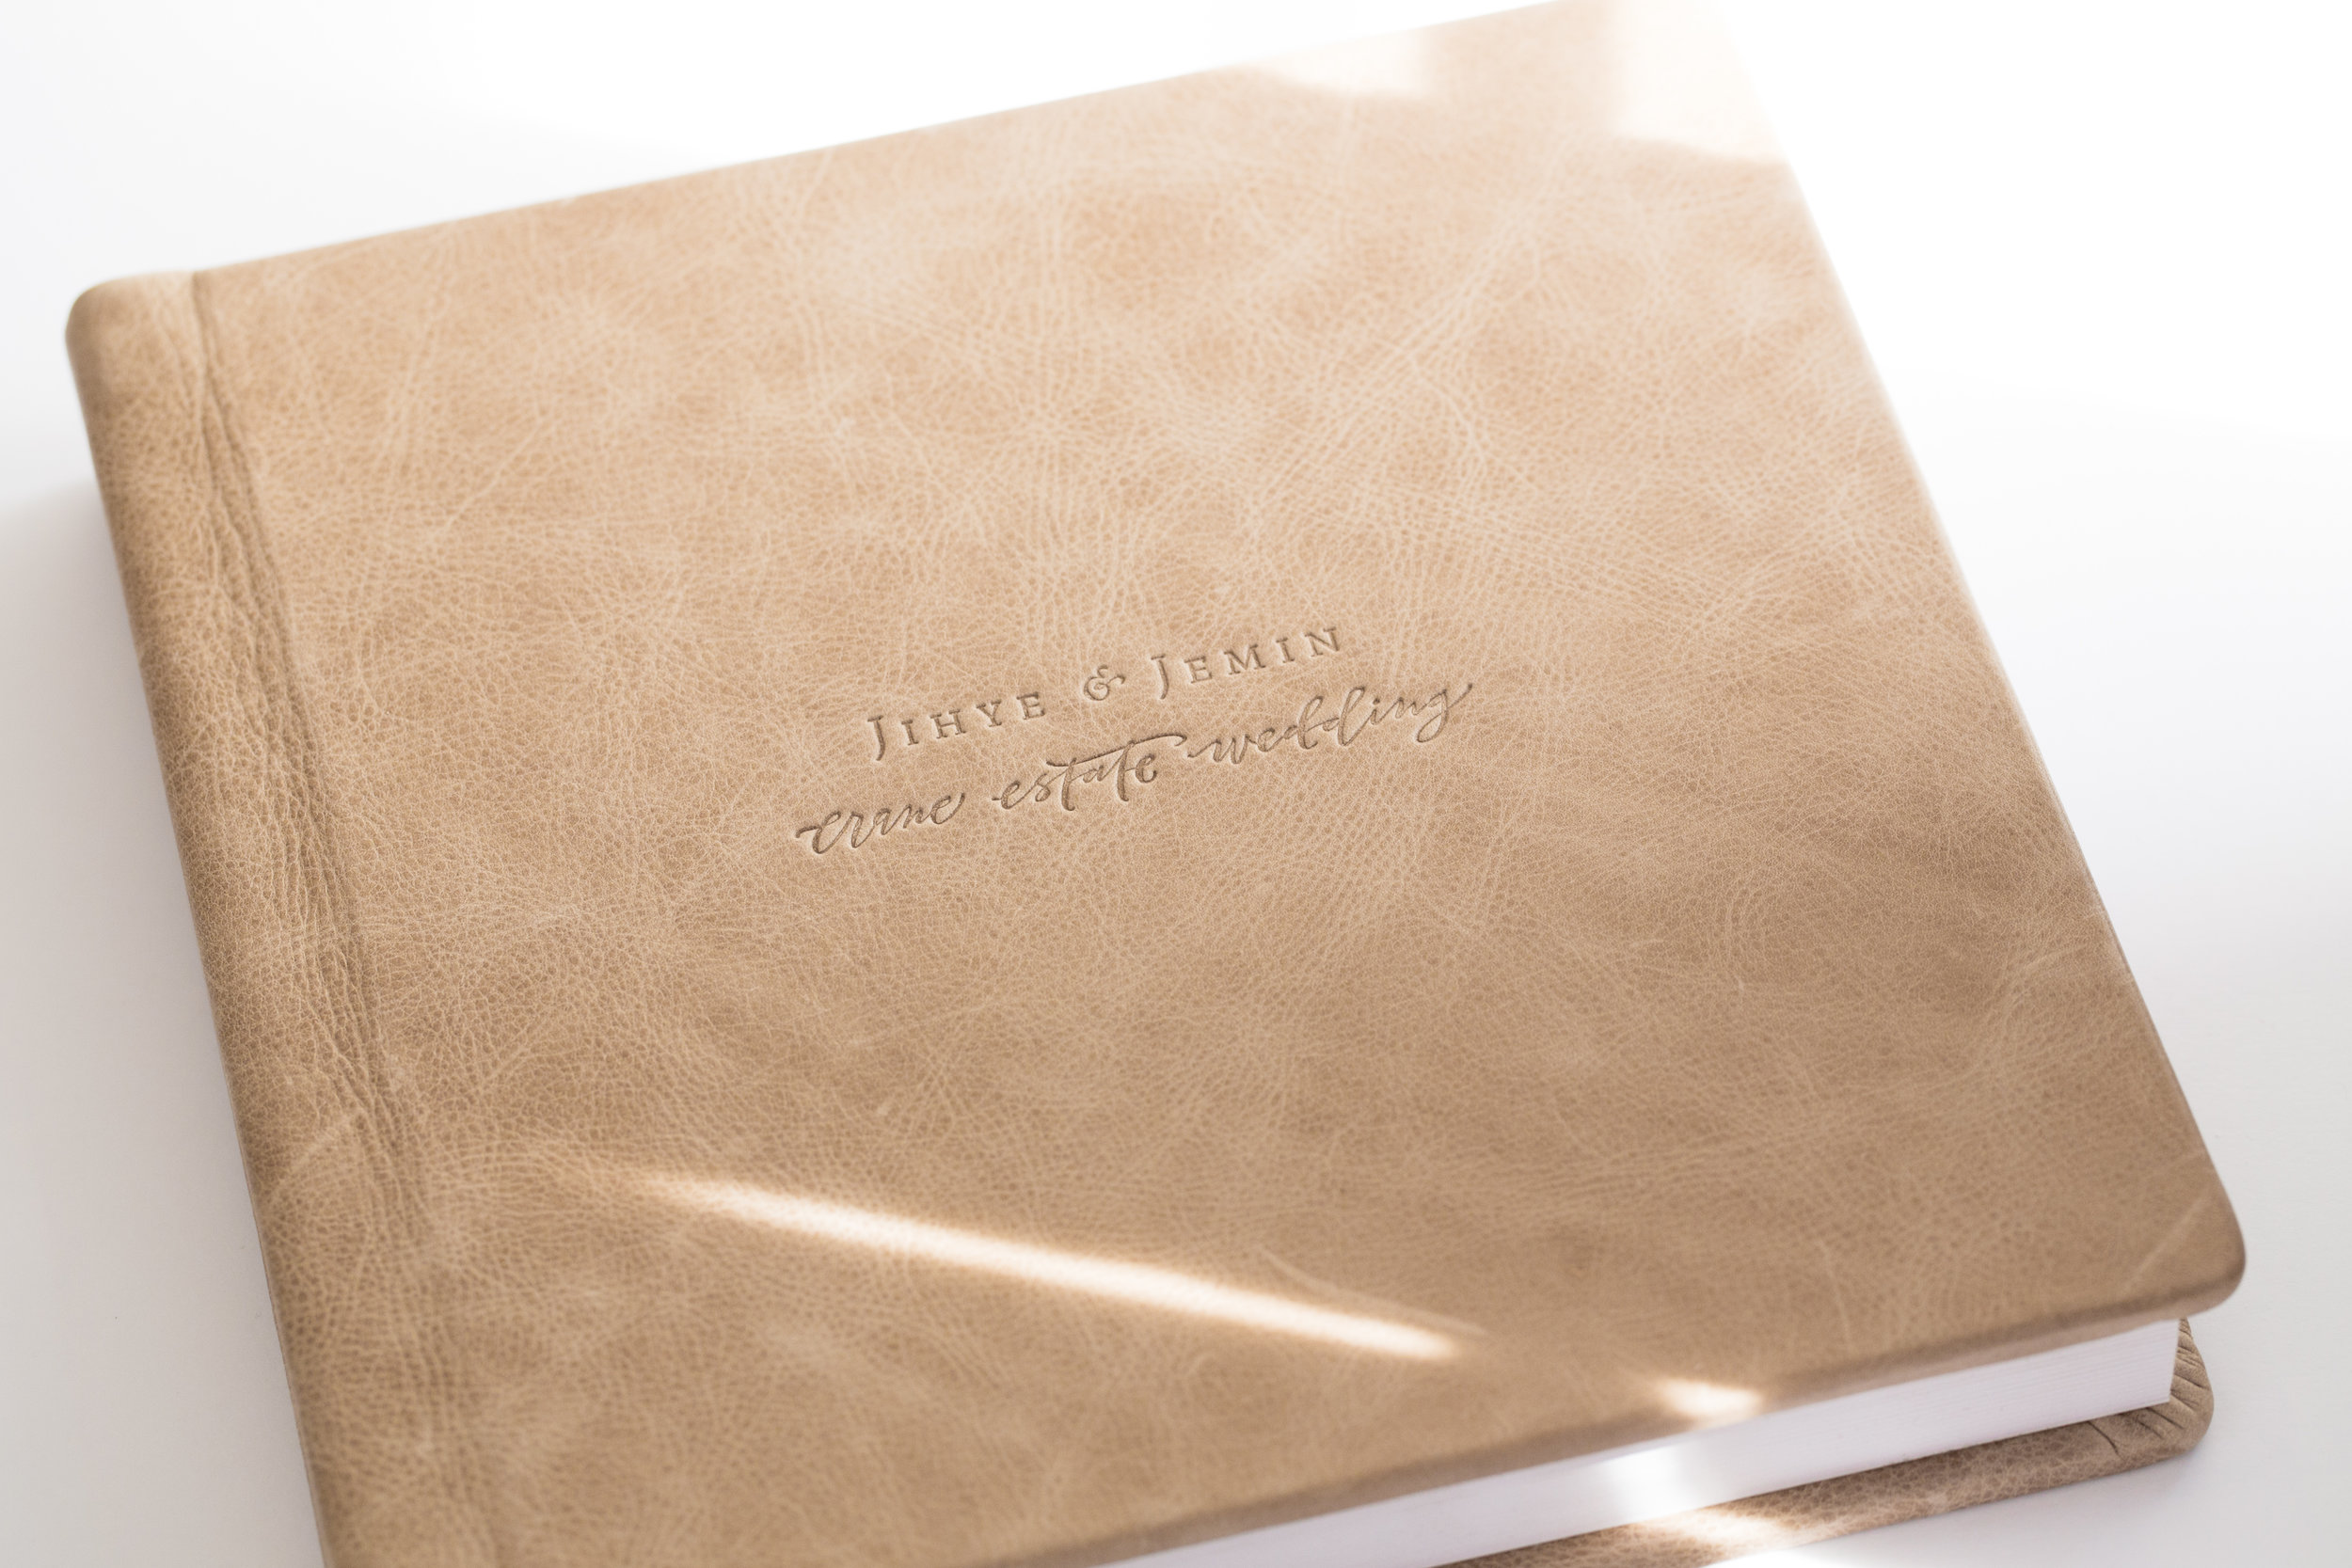 Signature Album - 10x10 hardcover album.Thick archival pages and sturdy cover that will last for generations.$800